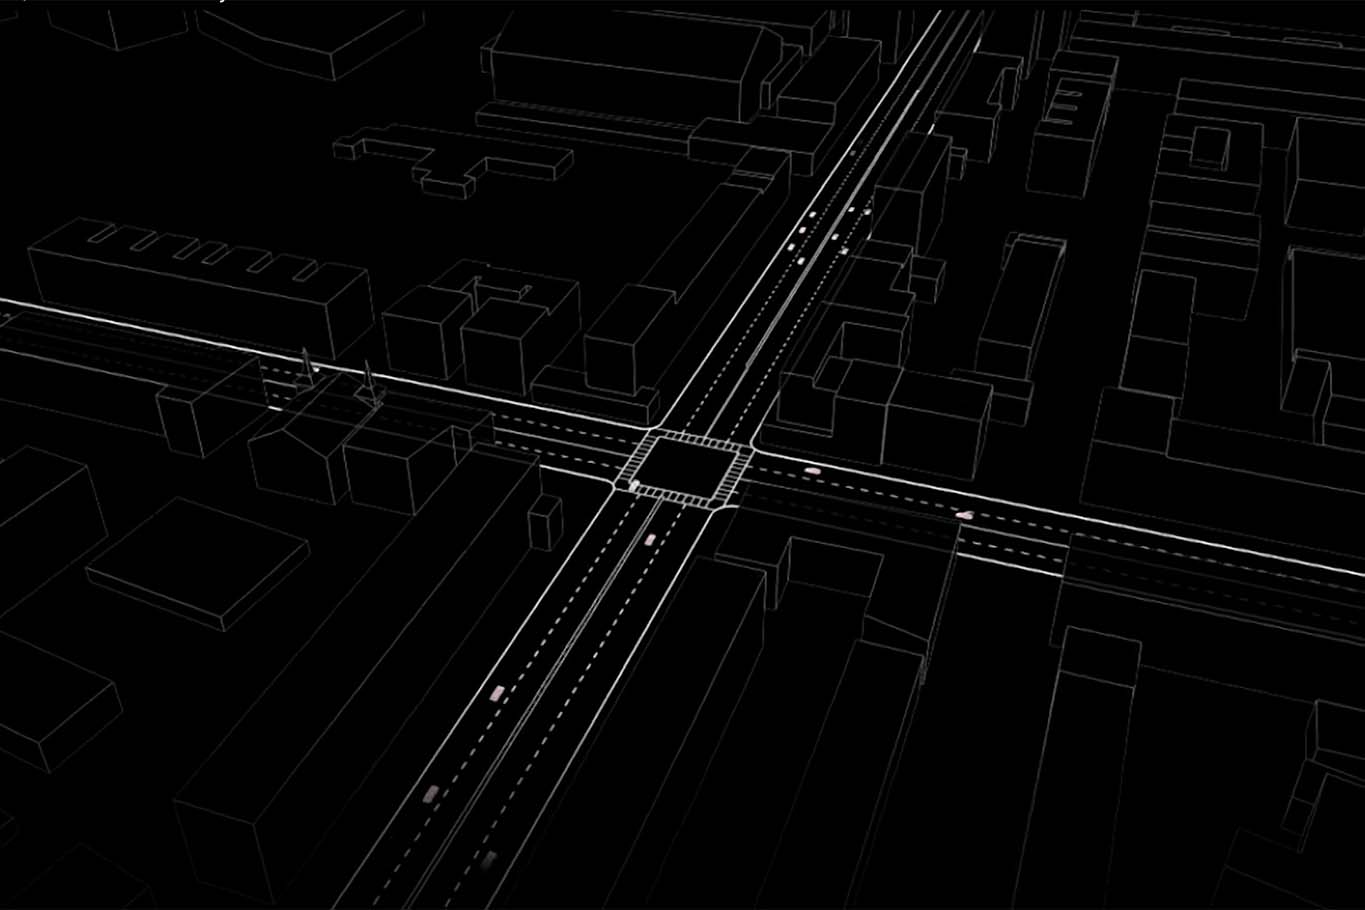 Illustration of city intersection